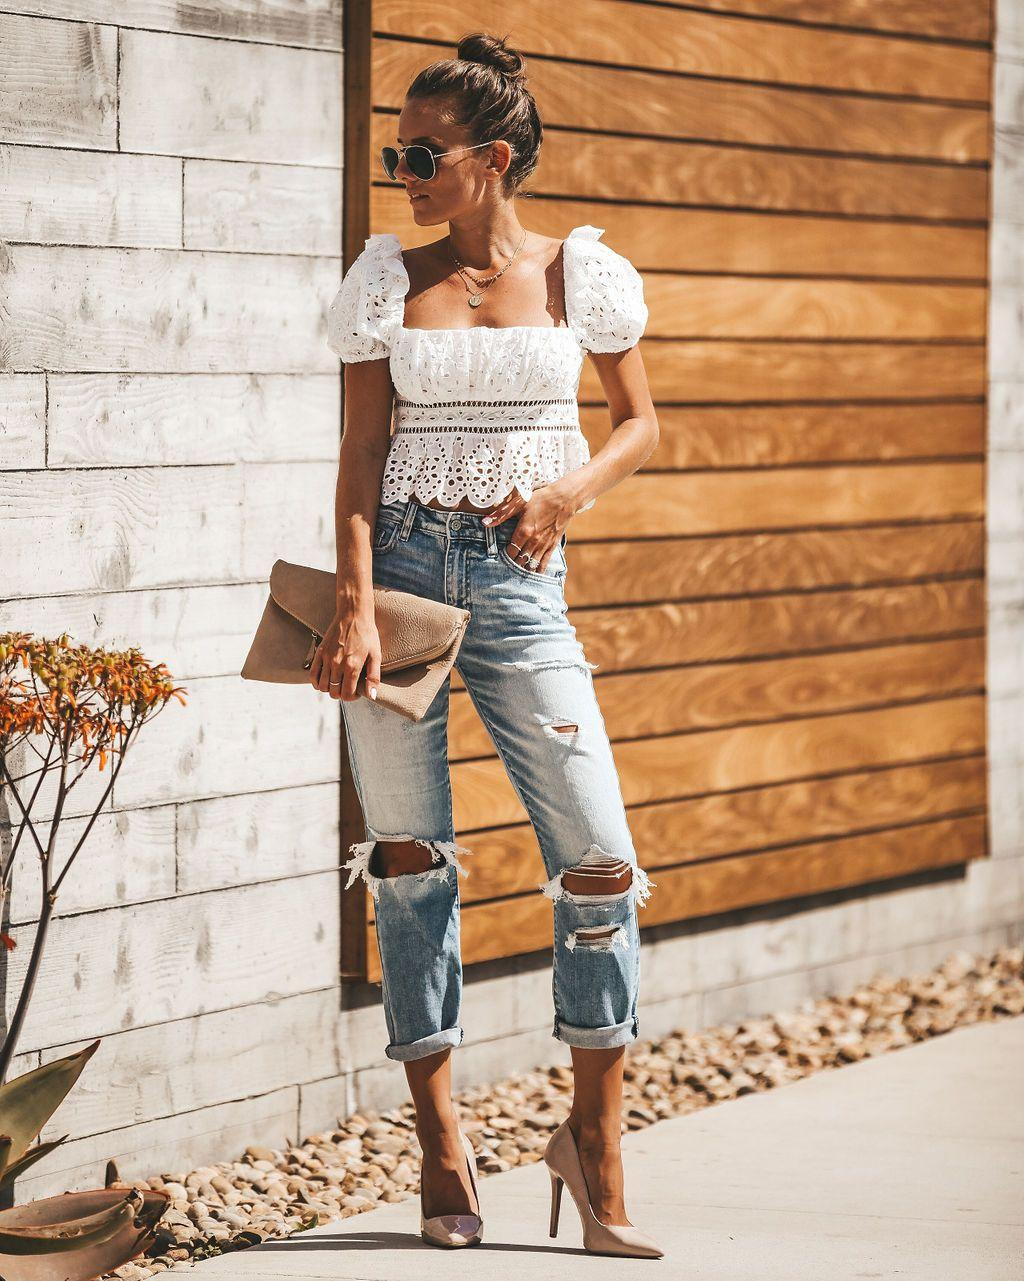 A fresh and stylish look for a relaxed summer getaway